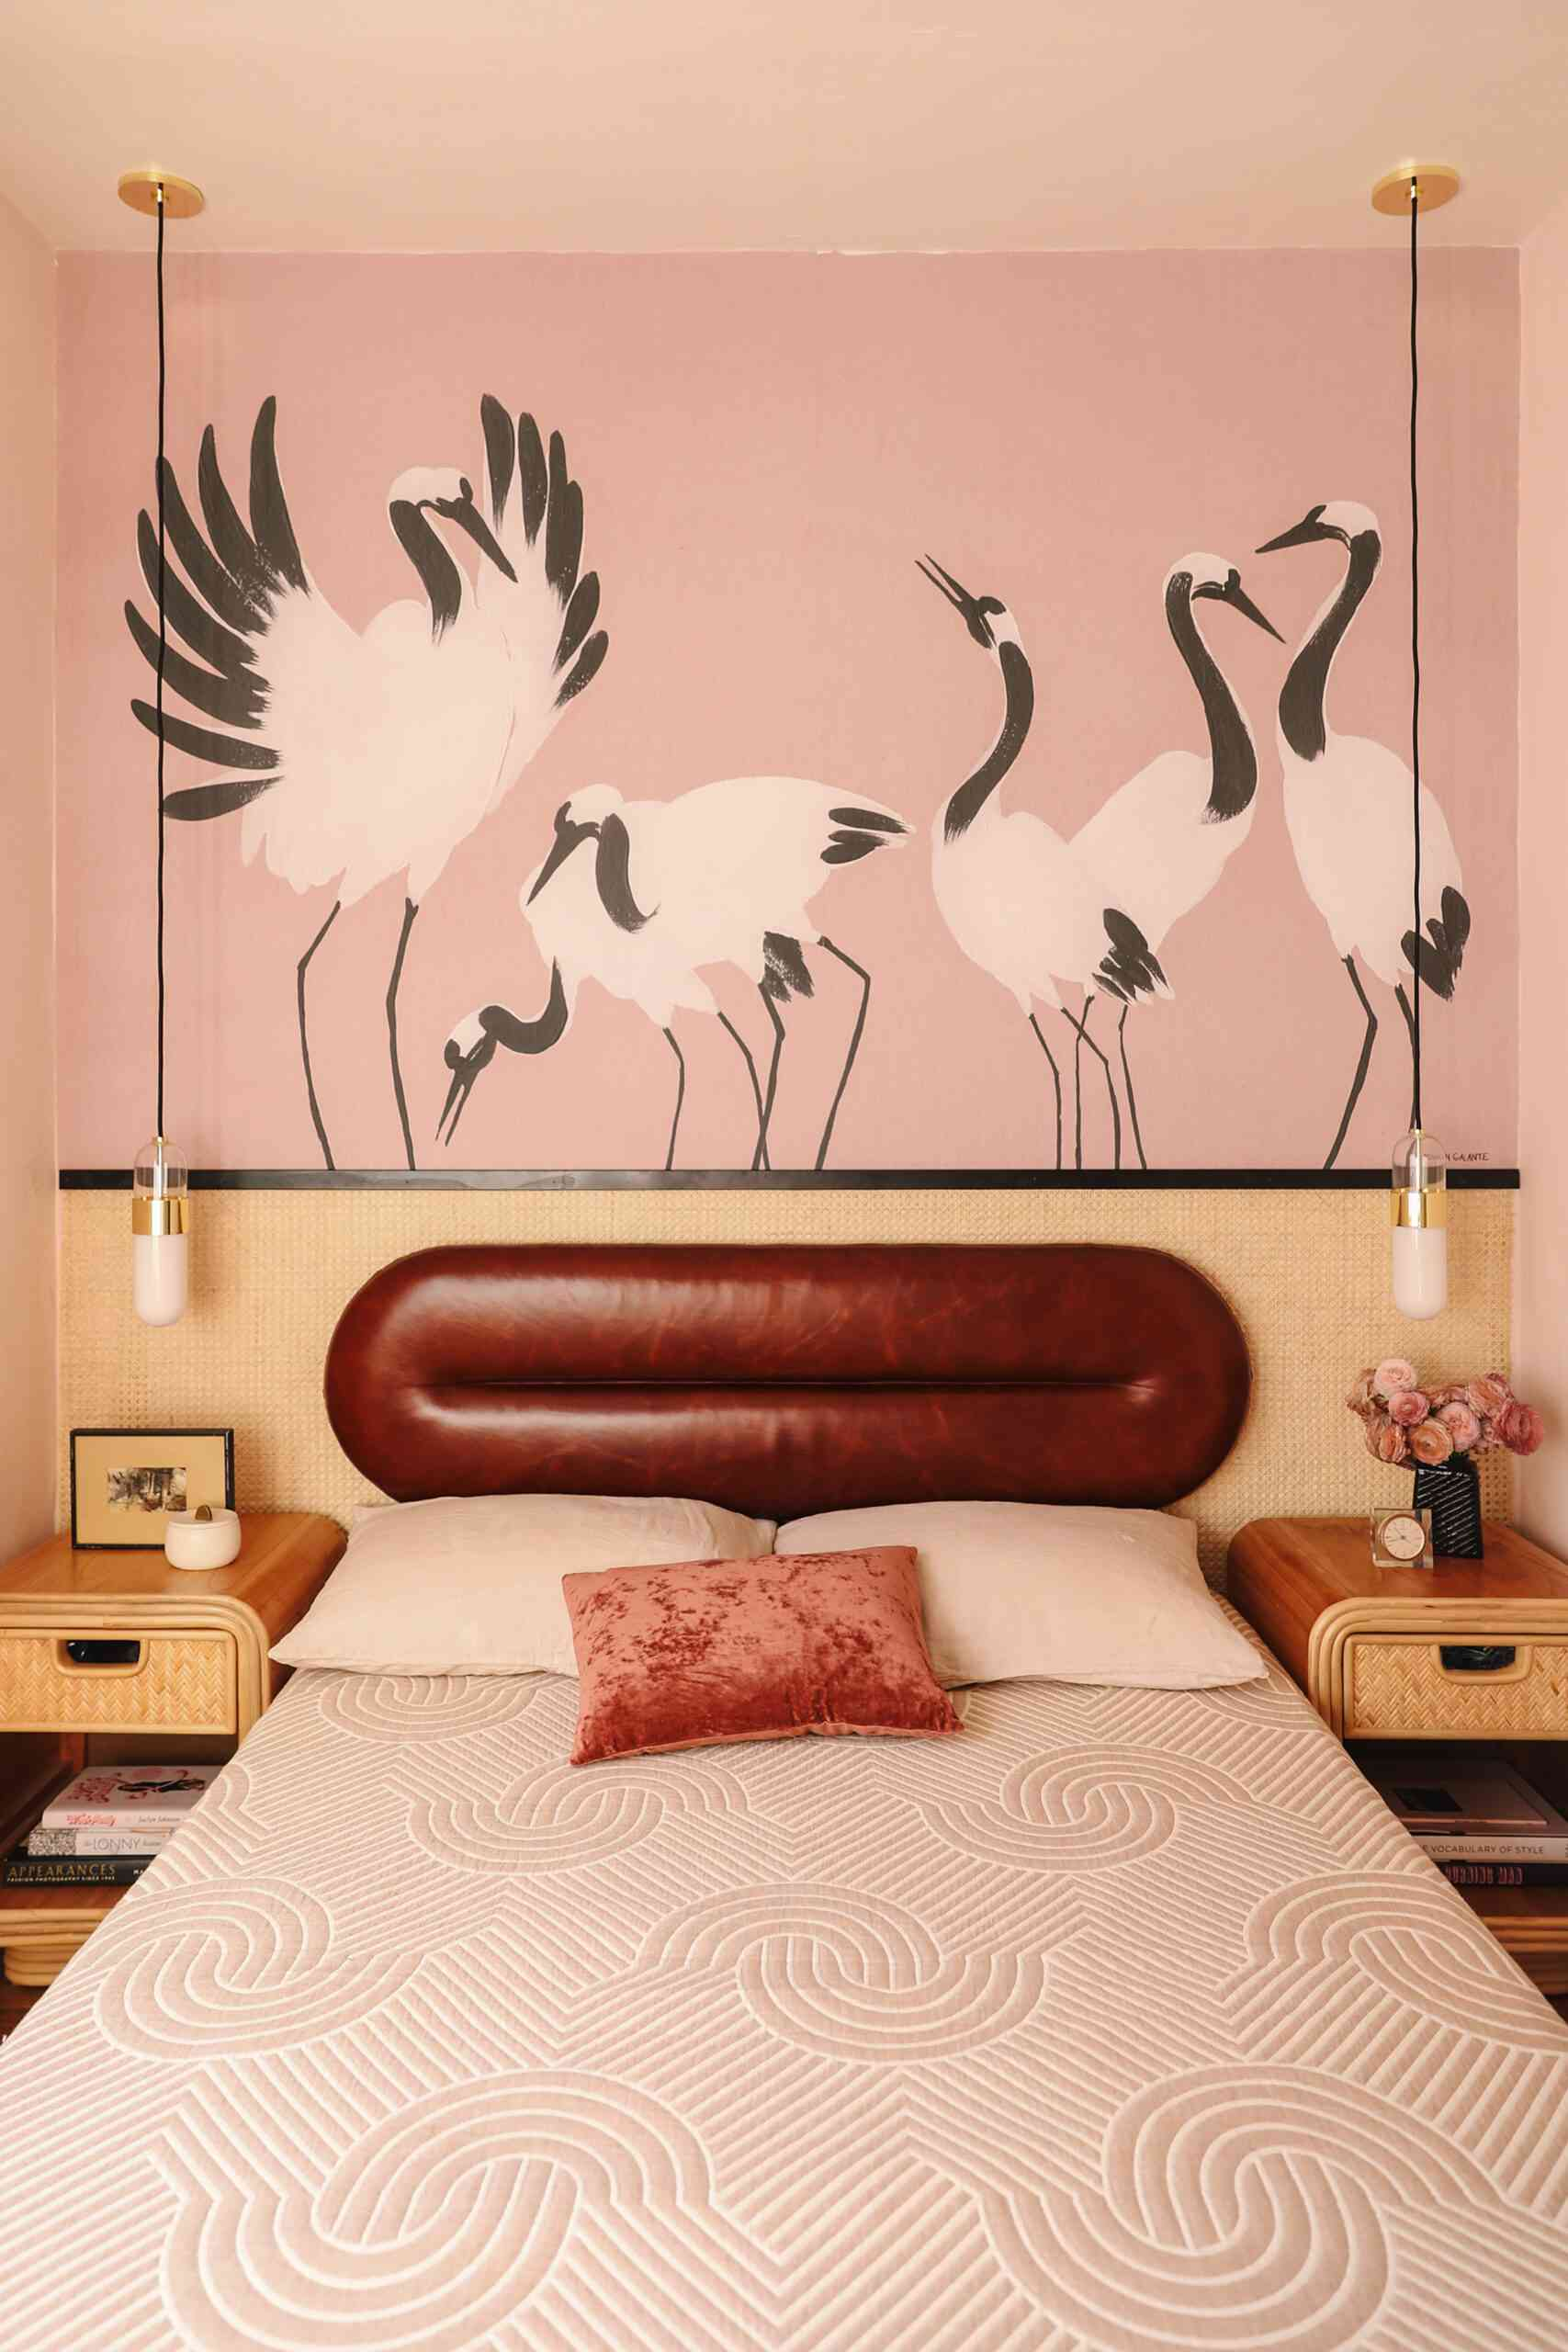 A bedroom with blush walls and a dark red bed frame